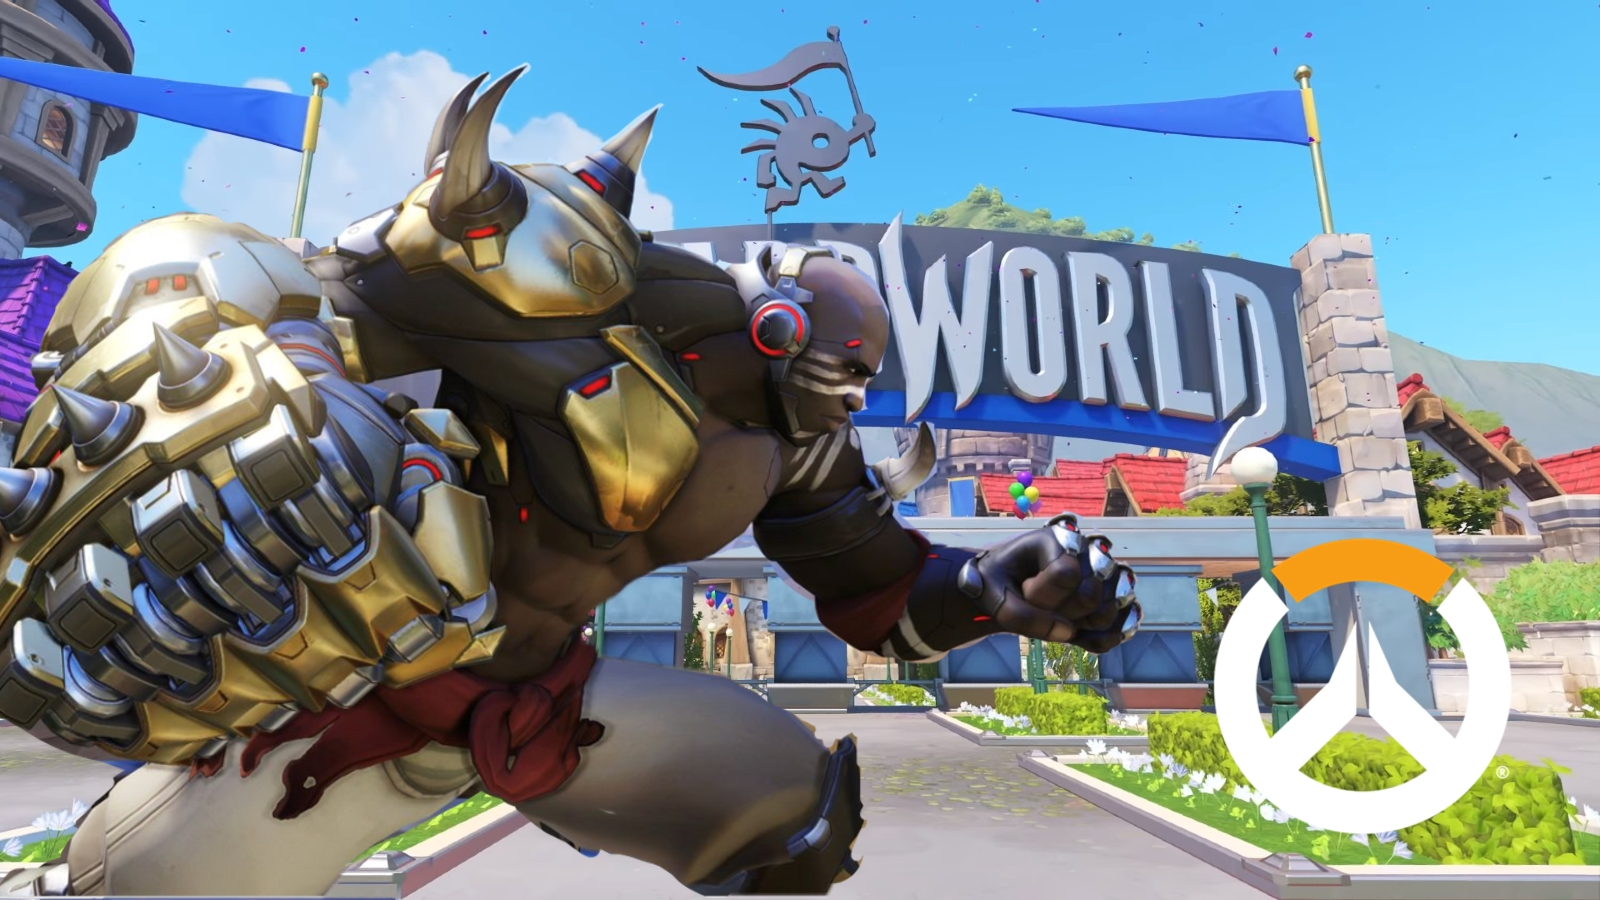 Doomfist in front of the Blizzard World sign